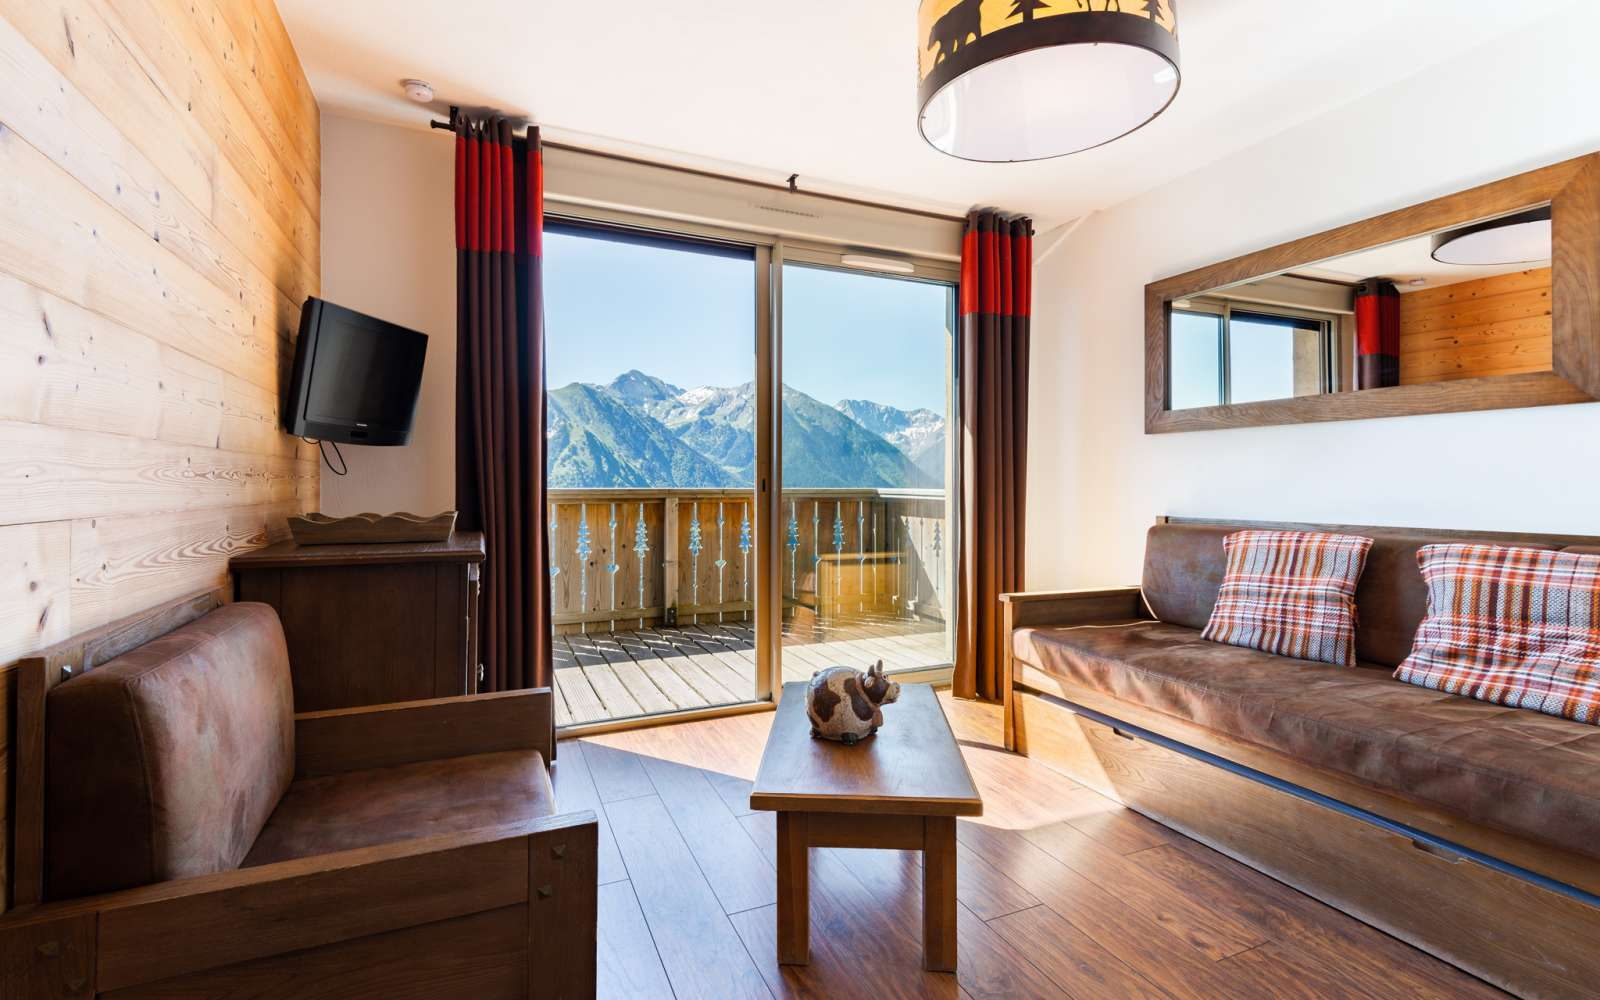 Lagrange Vacances Les Chalets De L Adet Saint Lary Pla D Adet Holiday Accommodation